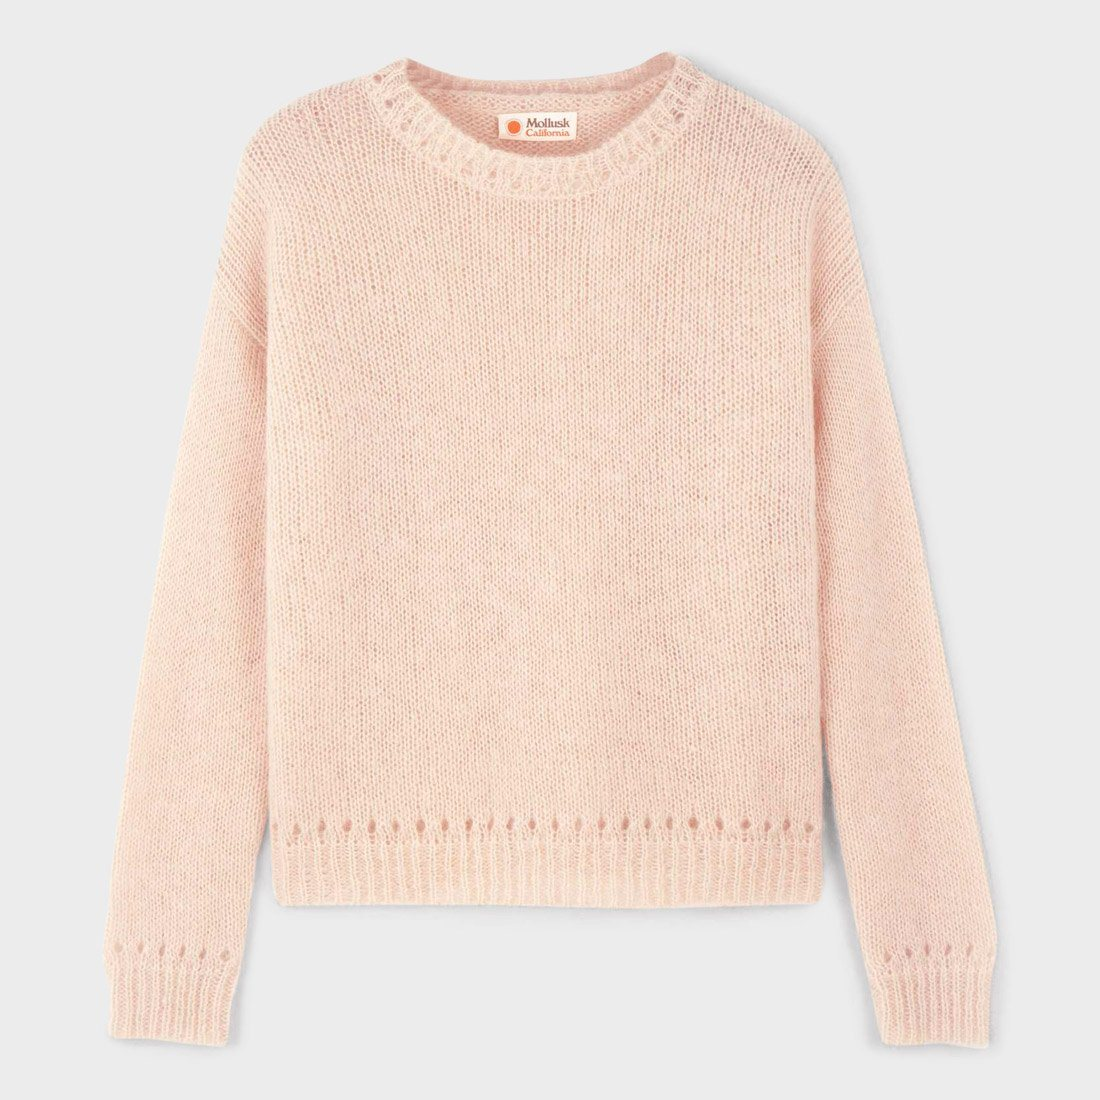 Mollusk Women's Nest Sweater